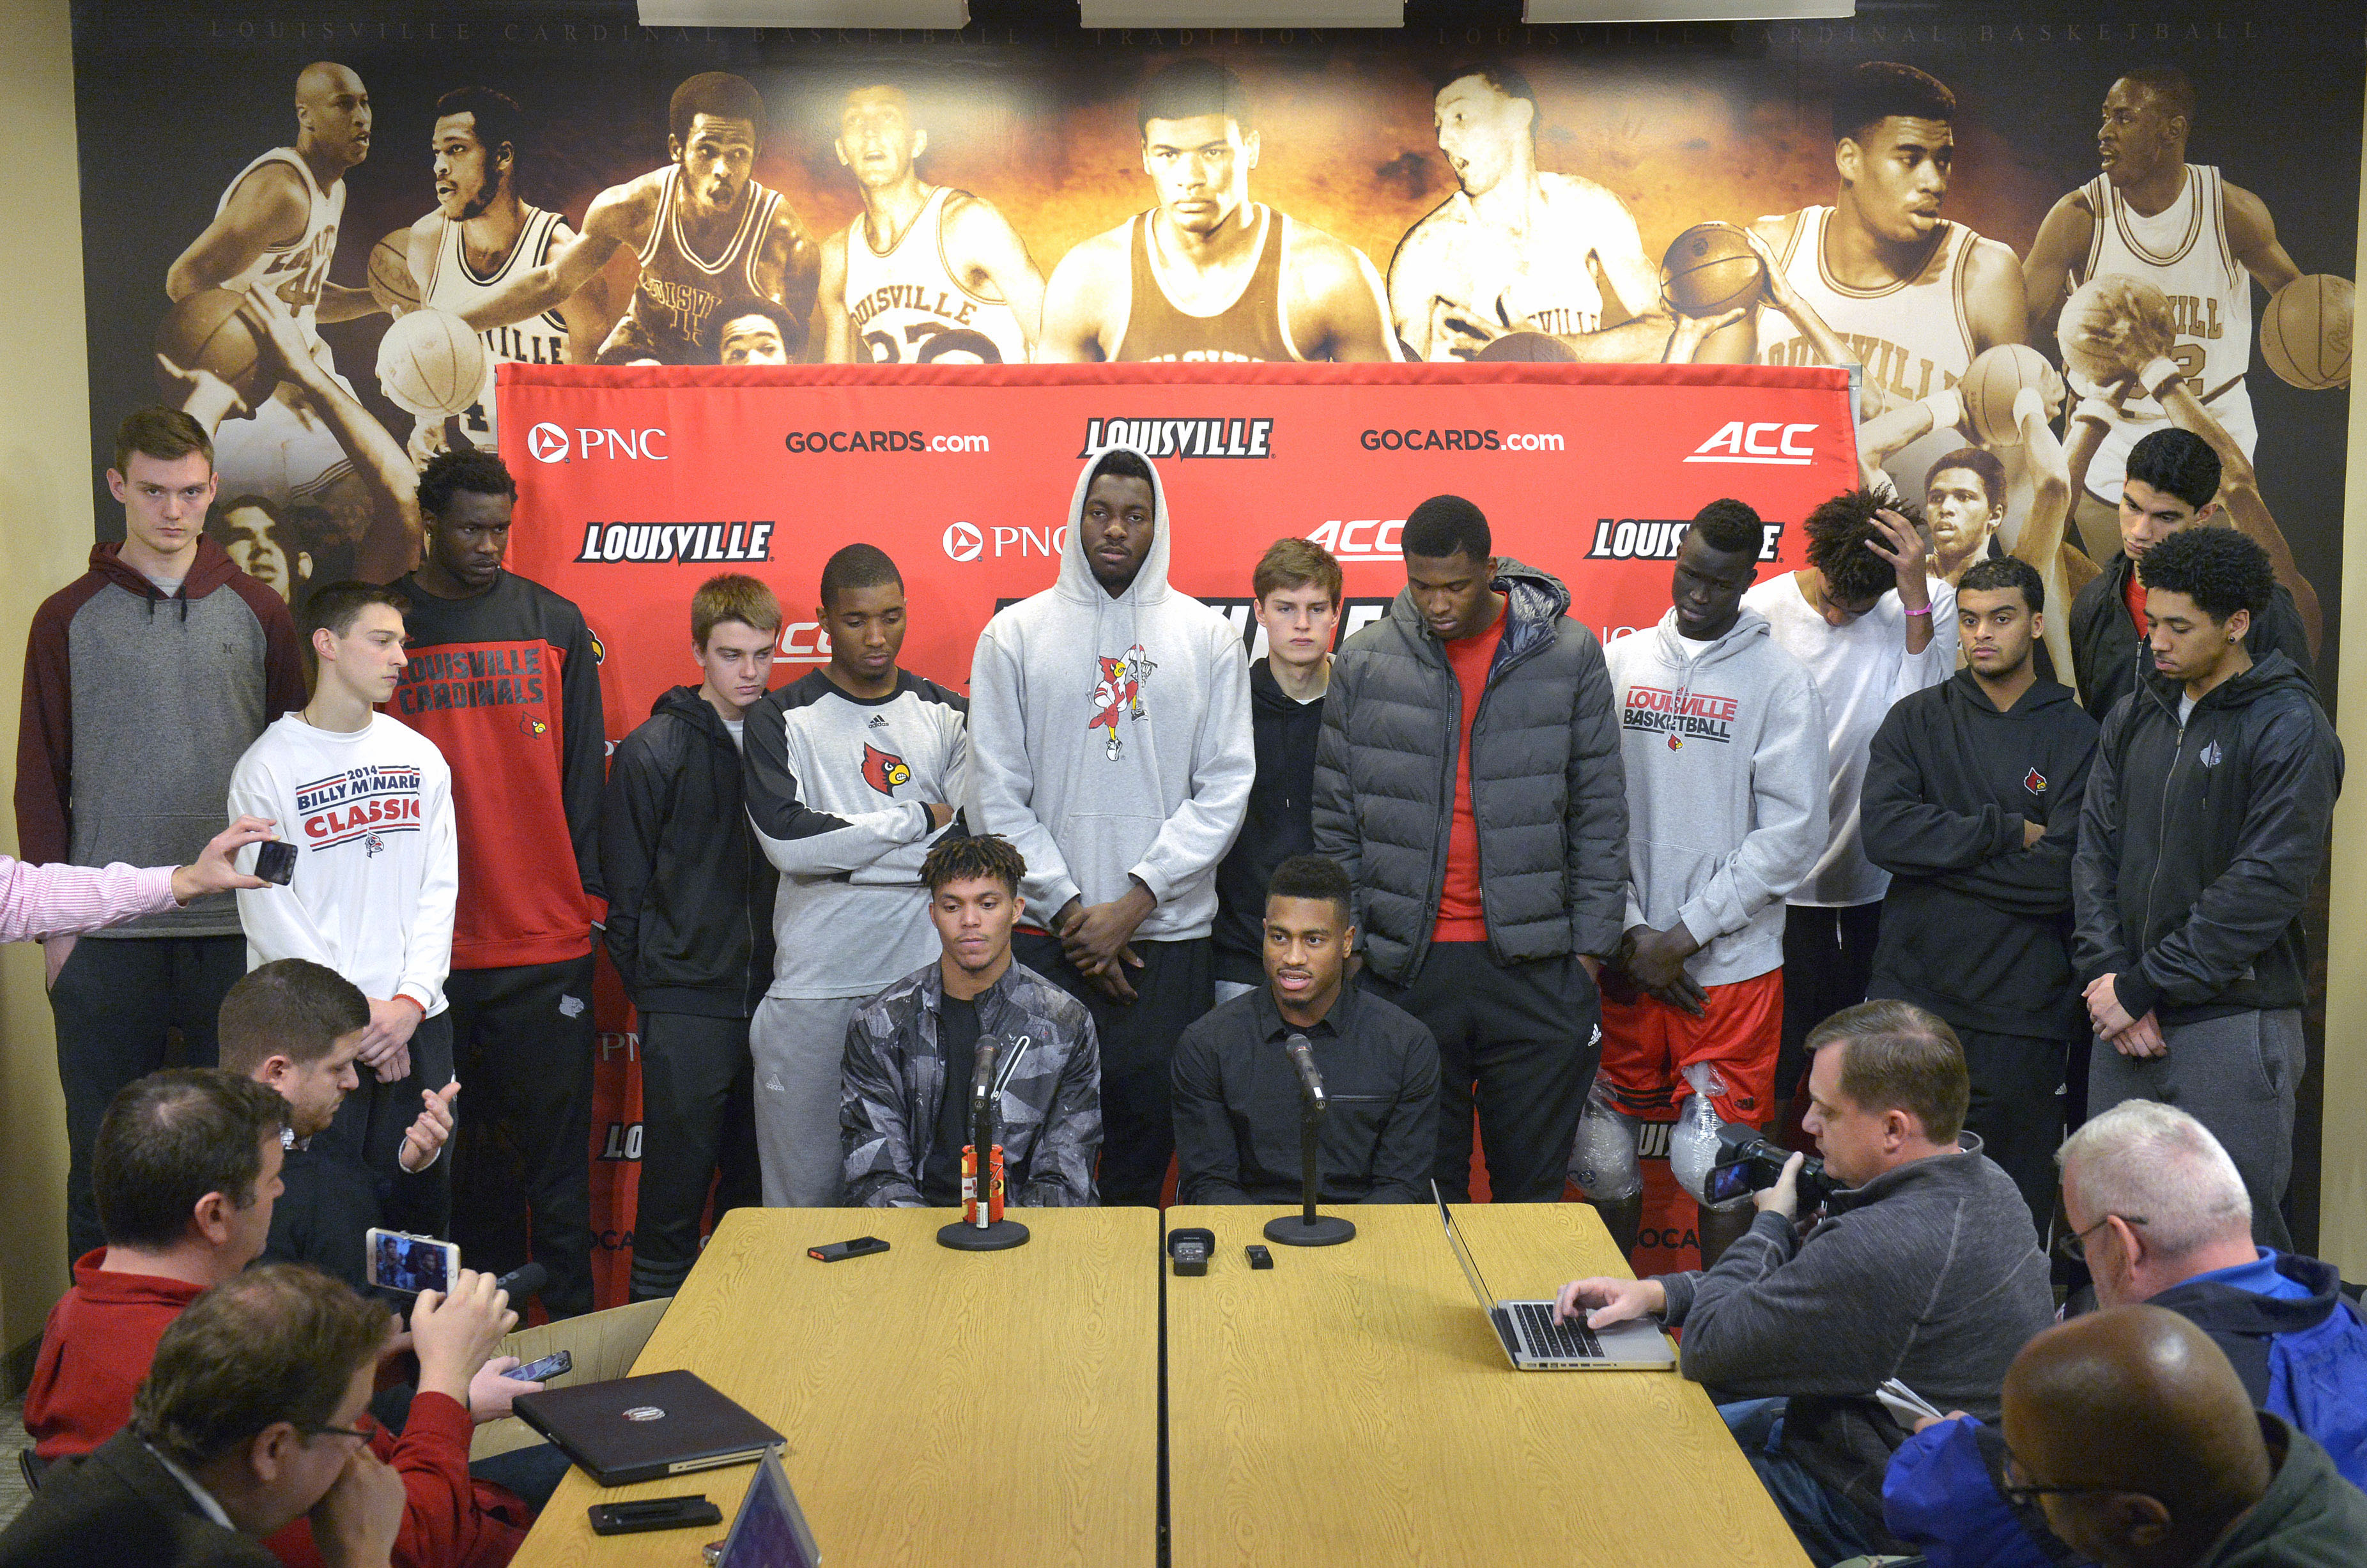 FILE - In this Feb. 5, 2016, file photo, surrounded by teammates, Louisville graduate students Damion Lee, seated left, and Trey Lewis meet with reporters during a press conference, in Louisville Ky. Louisville's decision to sit out the postseason because